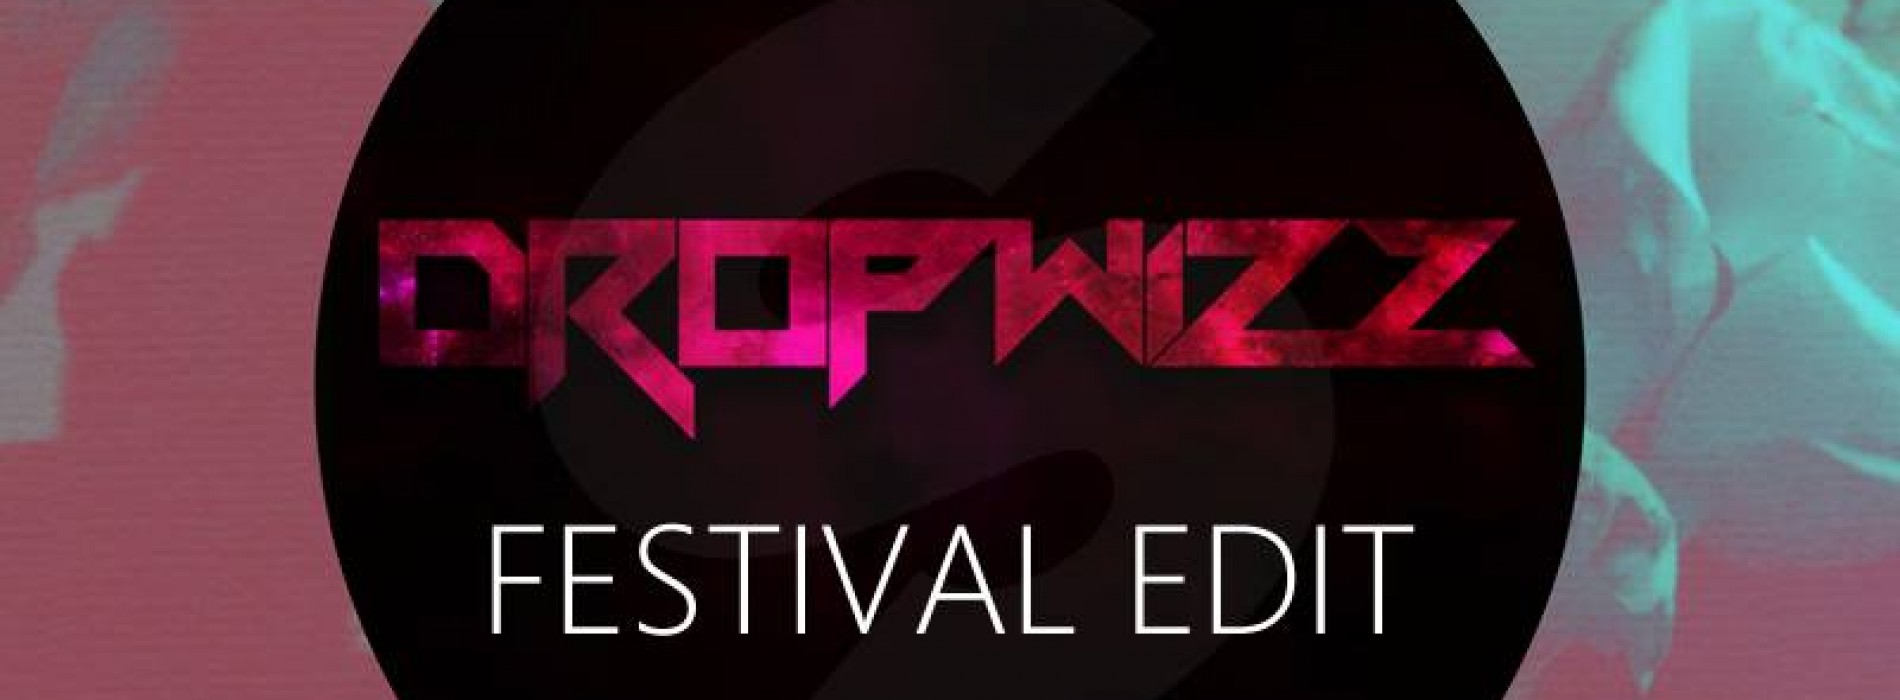 Dropwizz Gives Adore You The Festival Edit Treatment